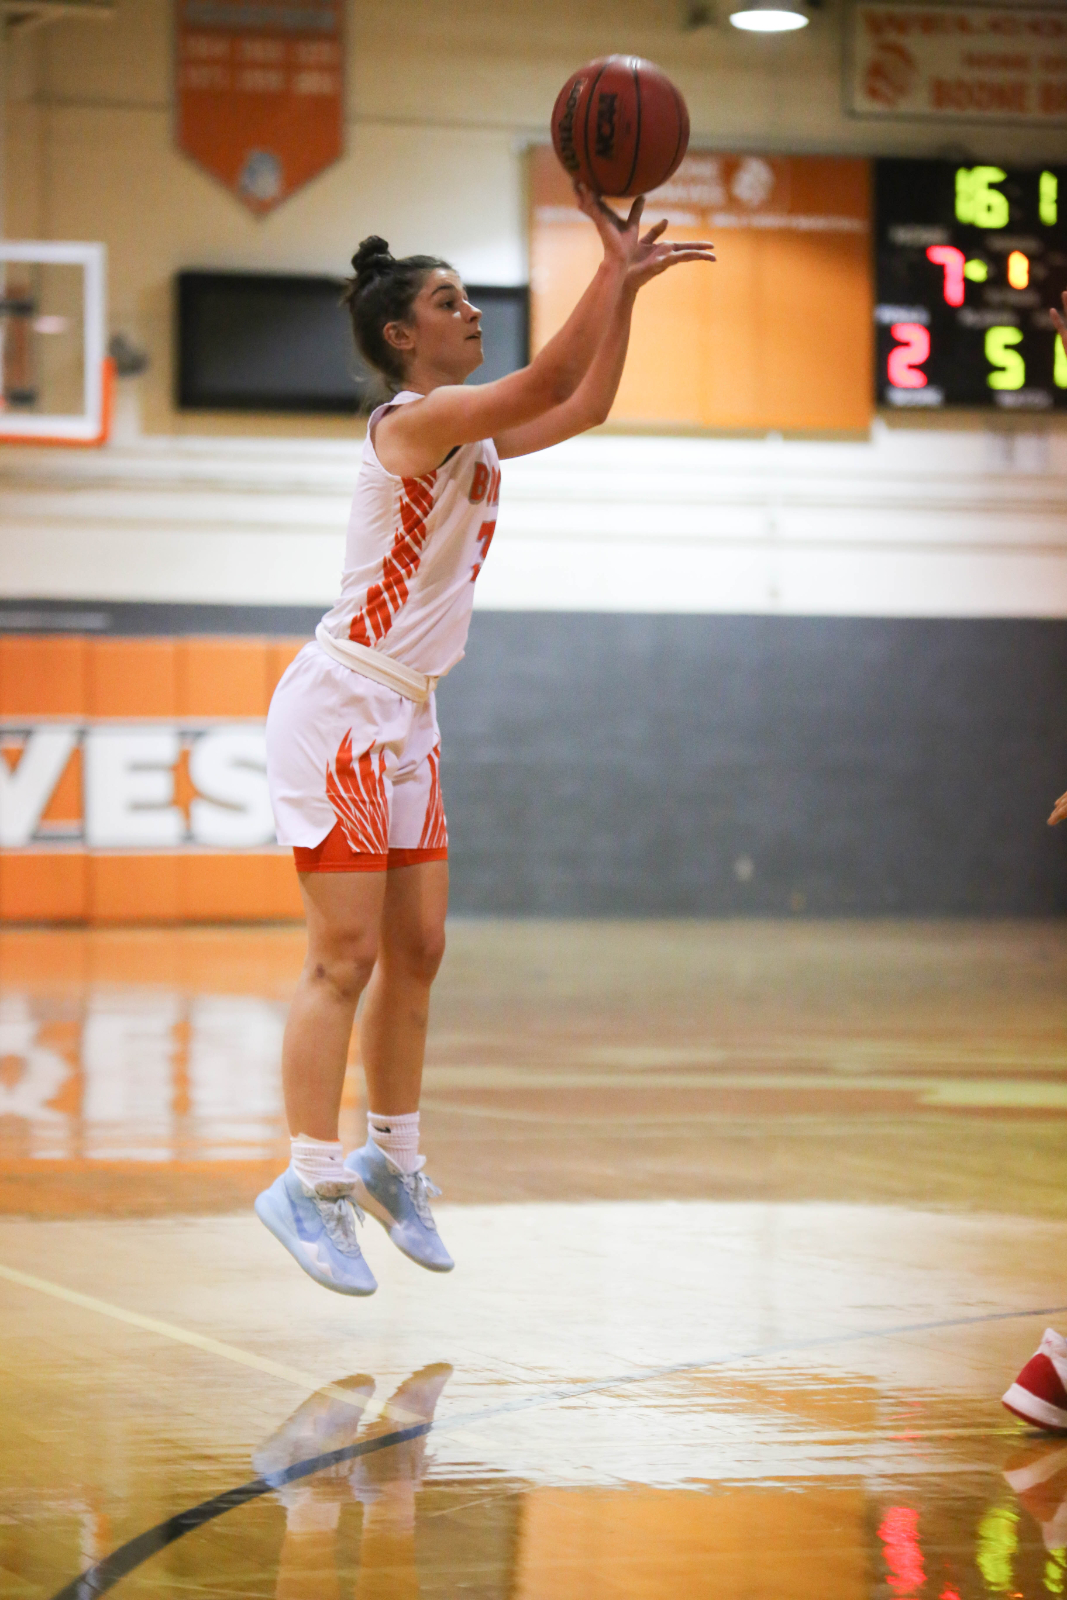 Congratulations Maddy Morales for scoring her 1000th point last night!